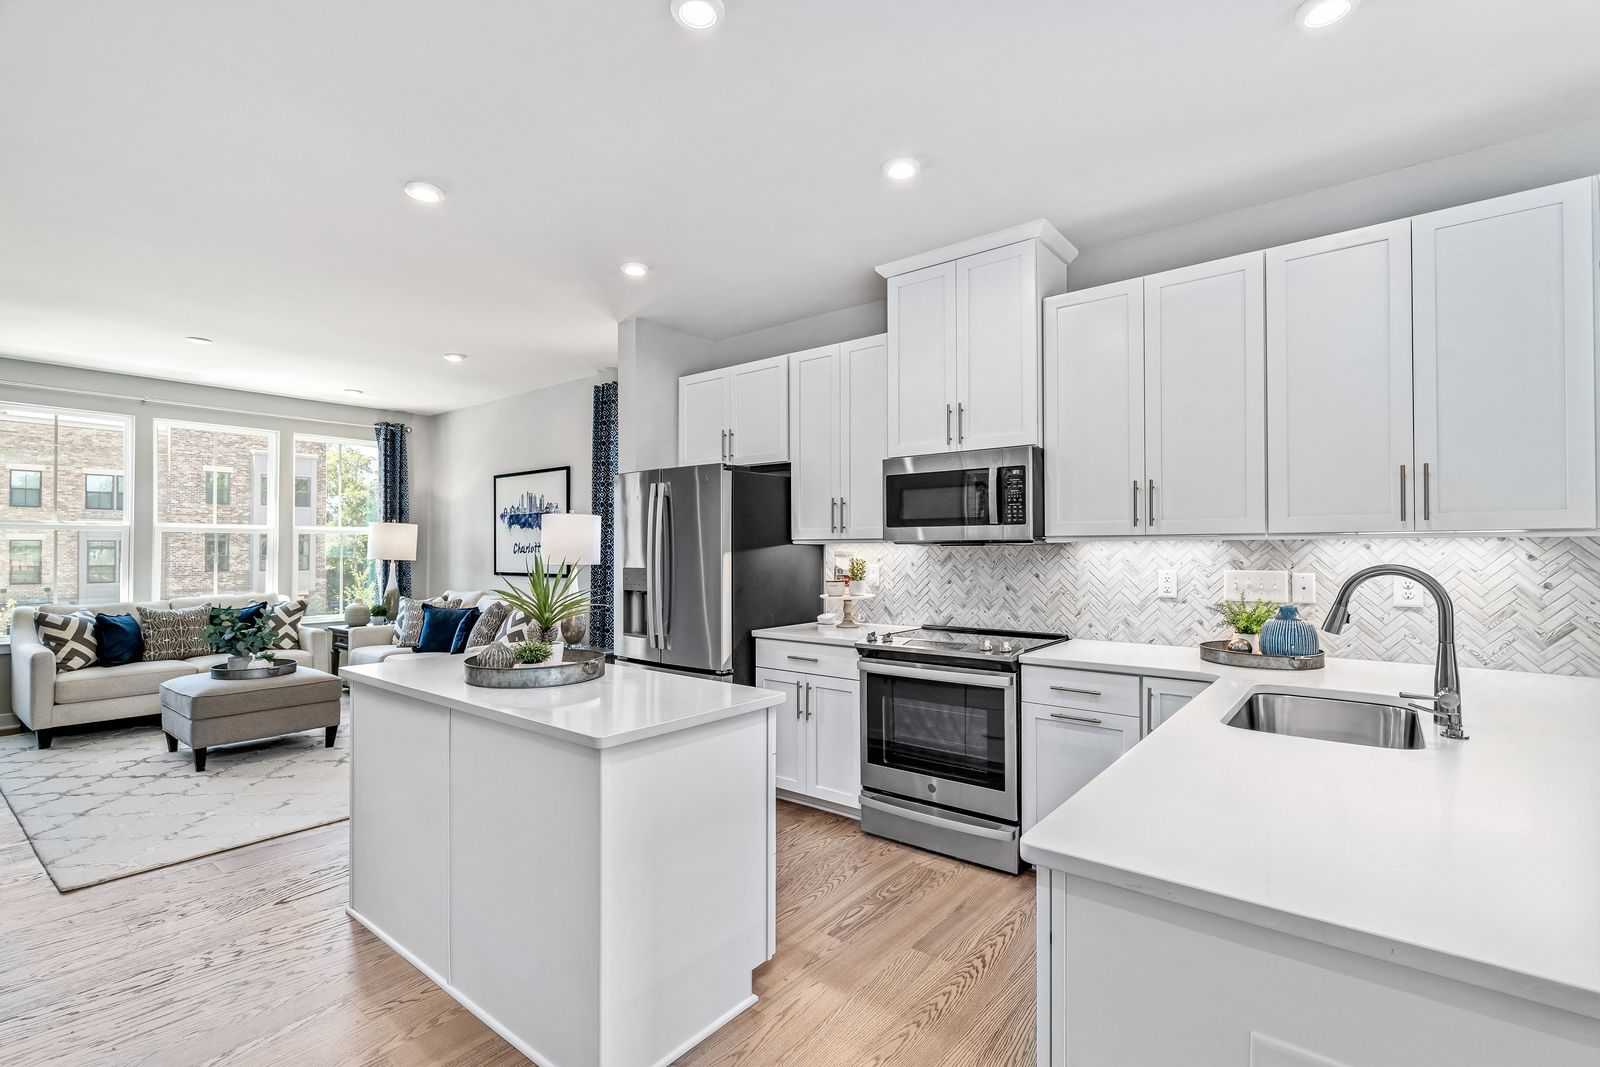 JOIN THE VIP LIST TO GET THE LATEST UPDATED AND LOWEST PRICING:Now Open for Sales to VIPs! Own a new luxury garage townhome in Hyattsville just steps from the Metro & 25 minutes to DC. From the low $400s. Join the VIP List Today!